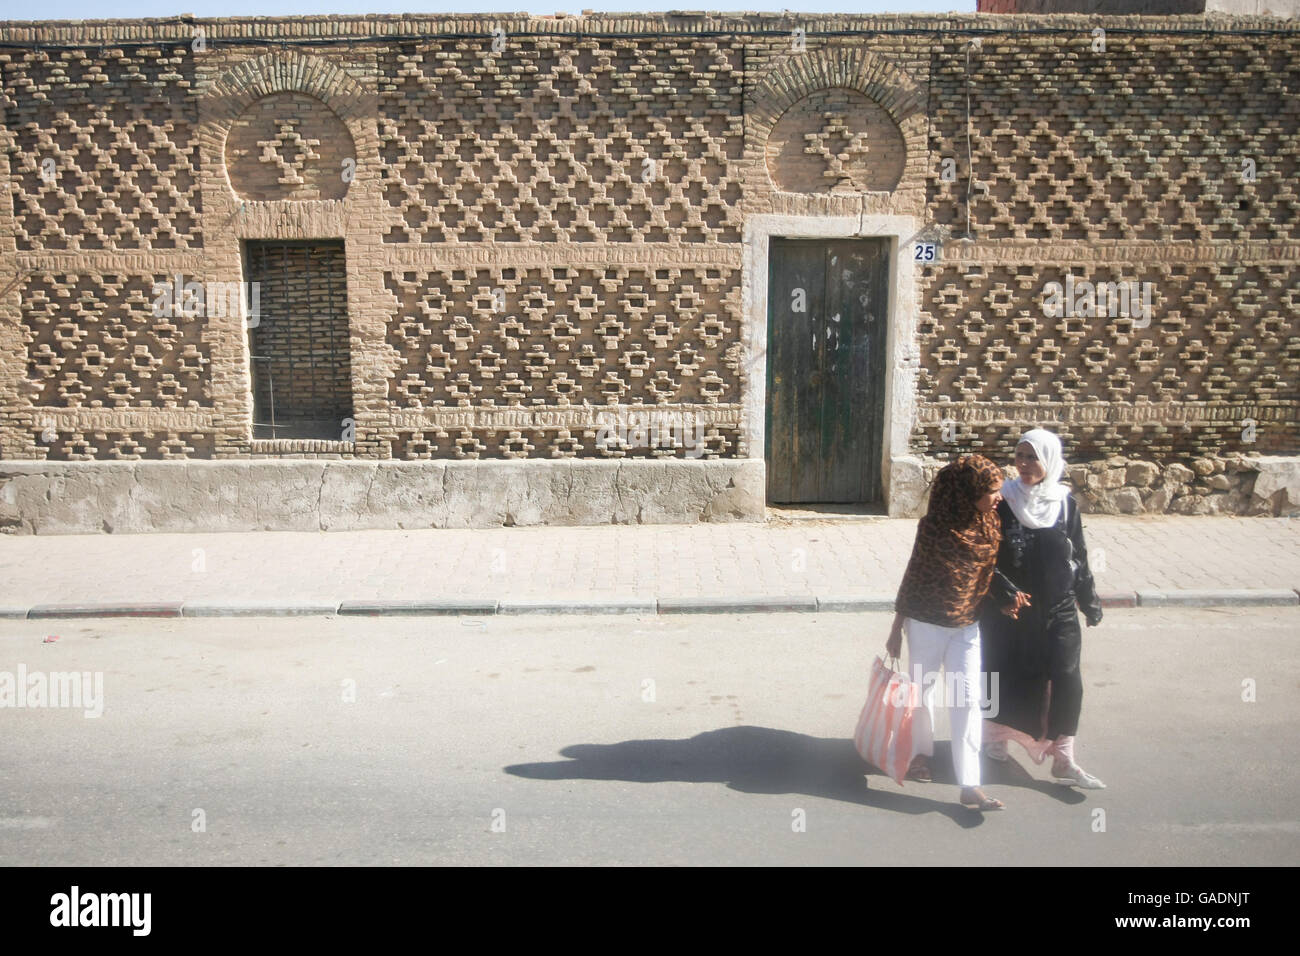 TOZEUR, TUNISIA - SEPTEMBER 16, 2012 : Two tunisian women crossing the street in Tozeur, Tunisia. Stock Photo